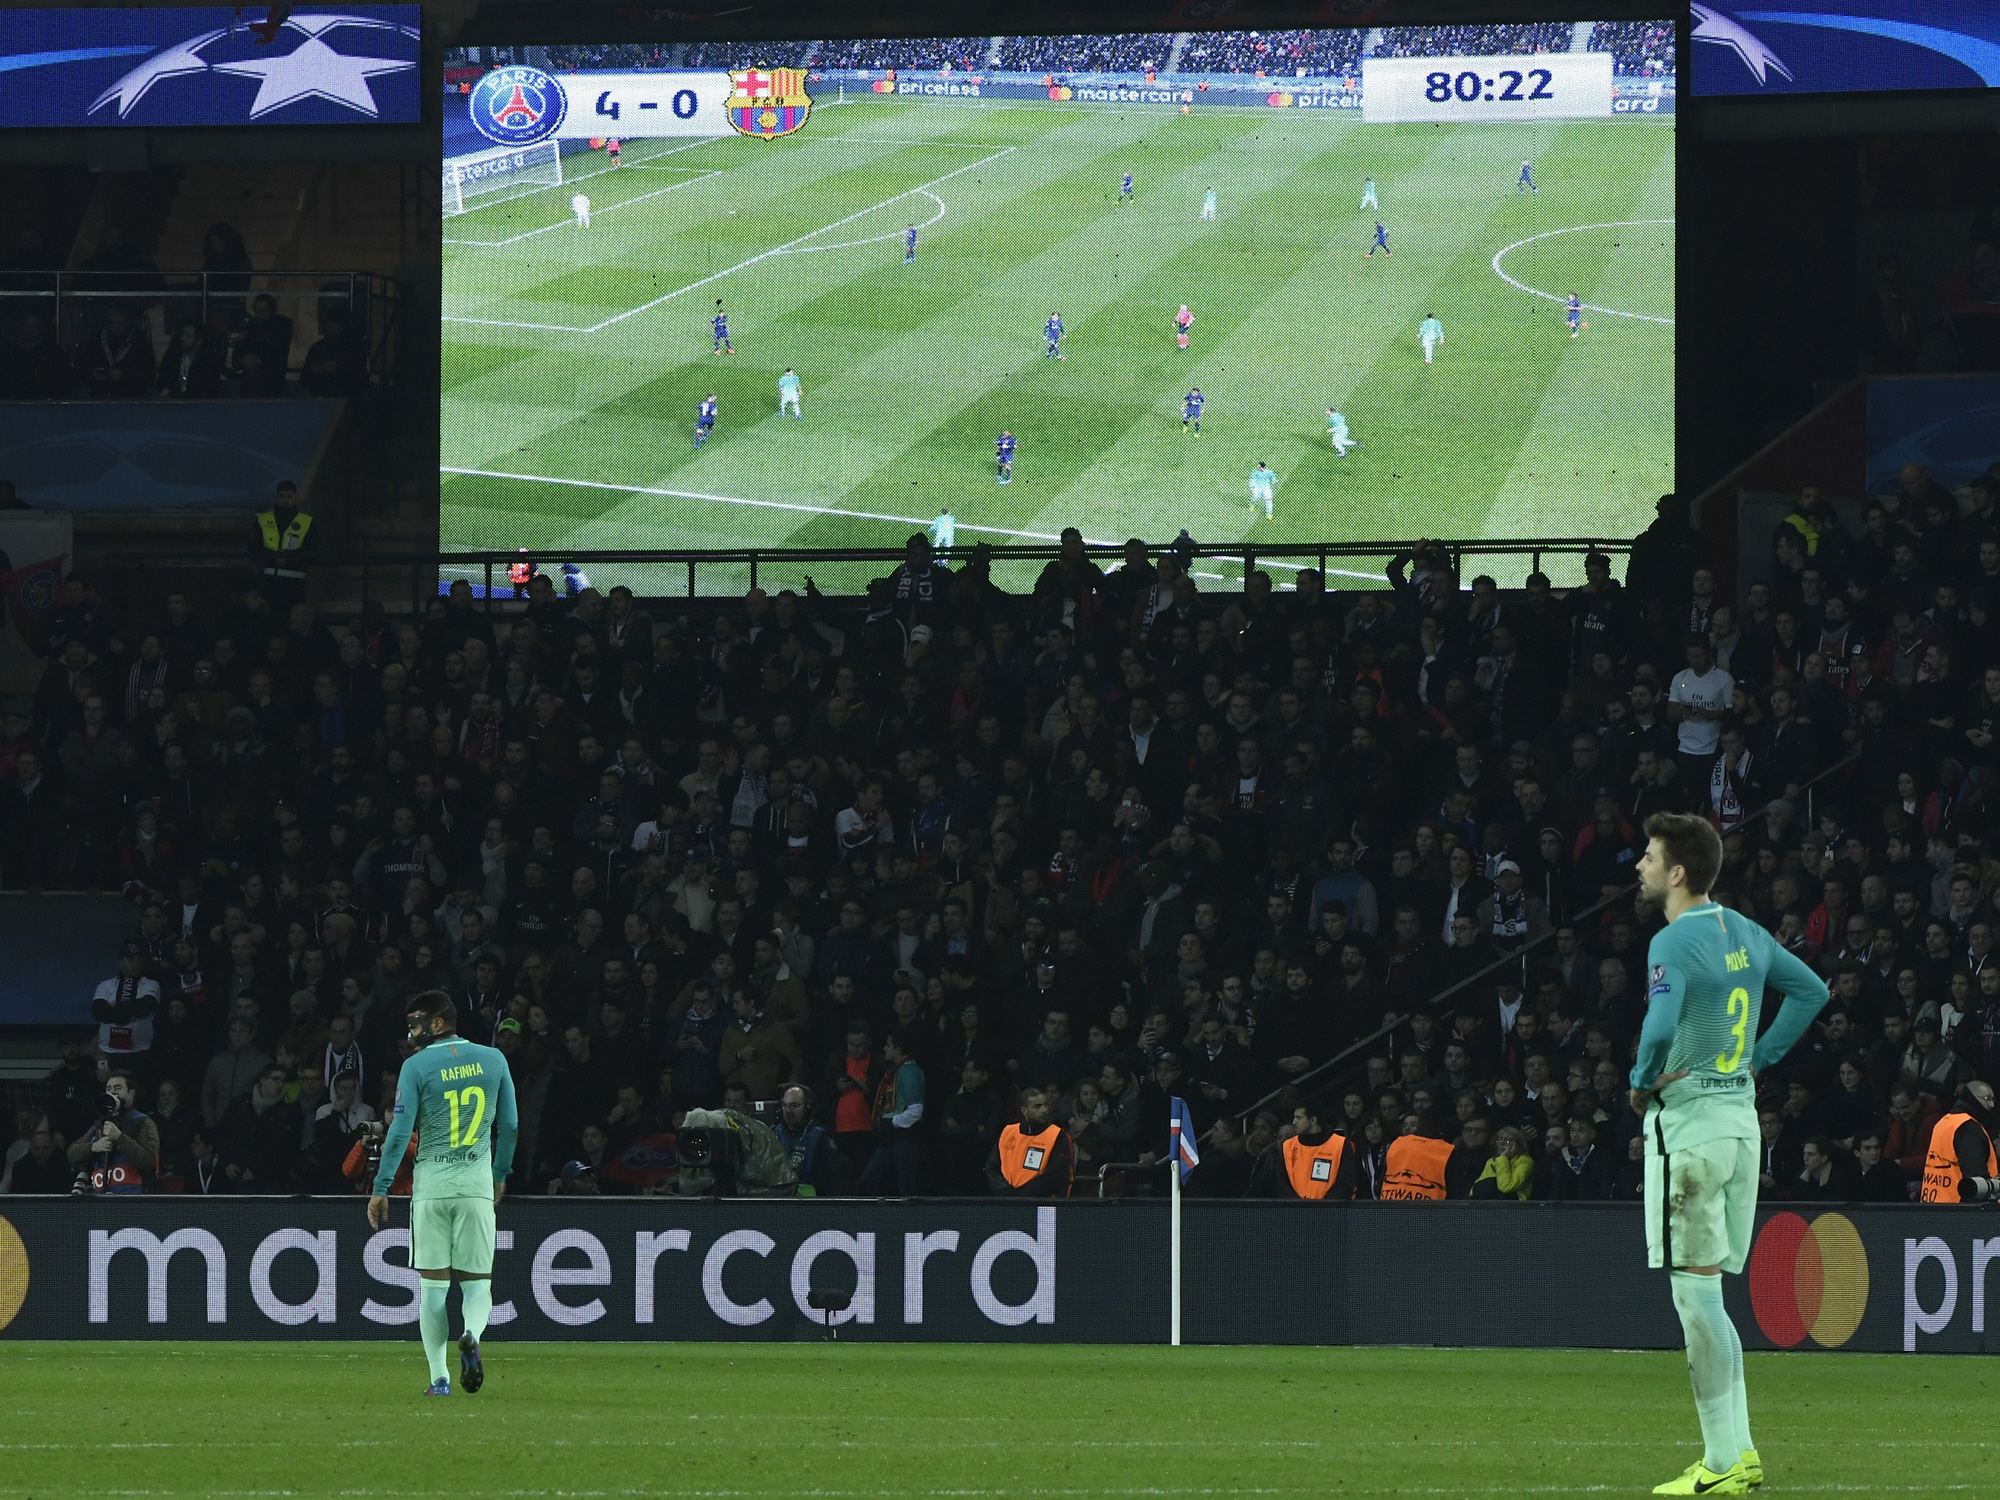 Barcelona gets thrashed by PSG in Champions League